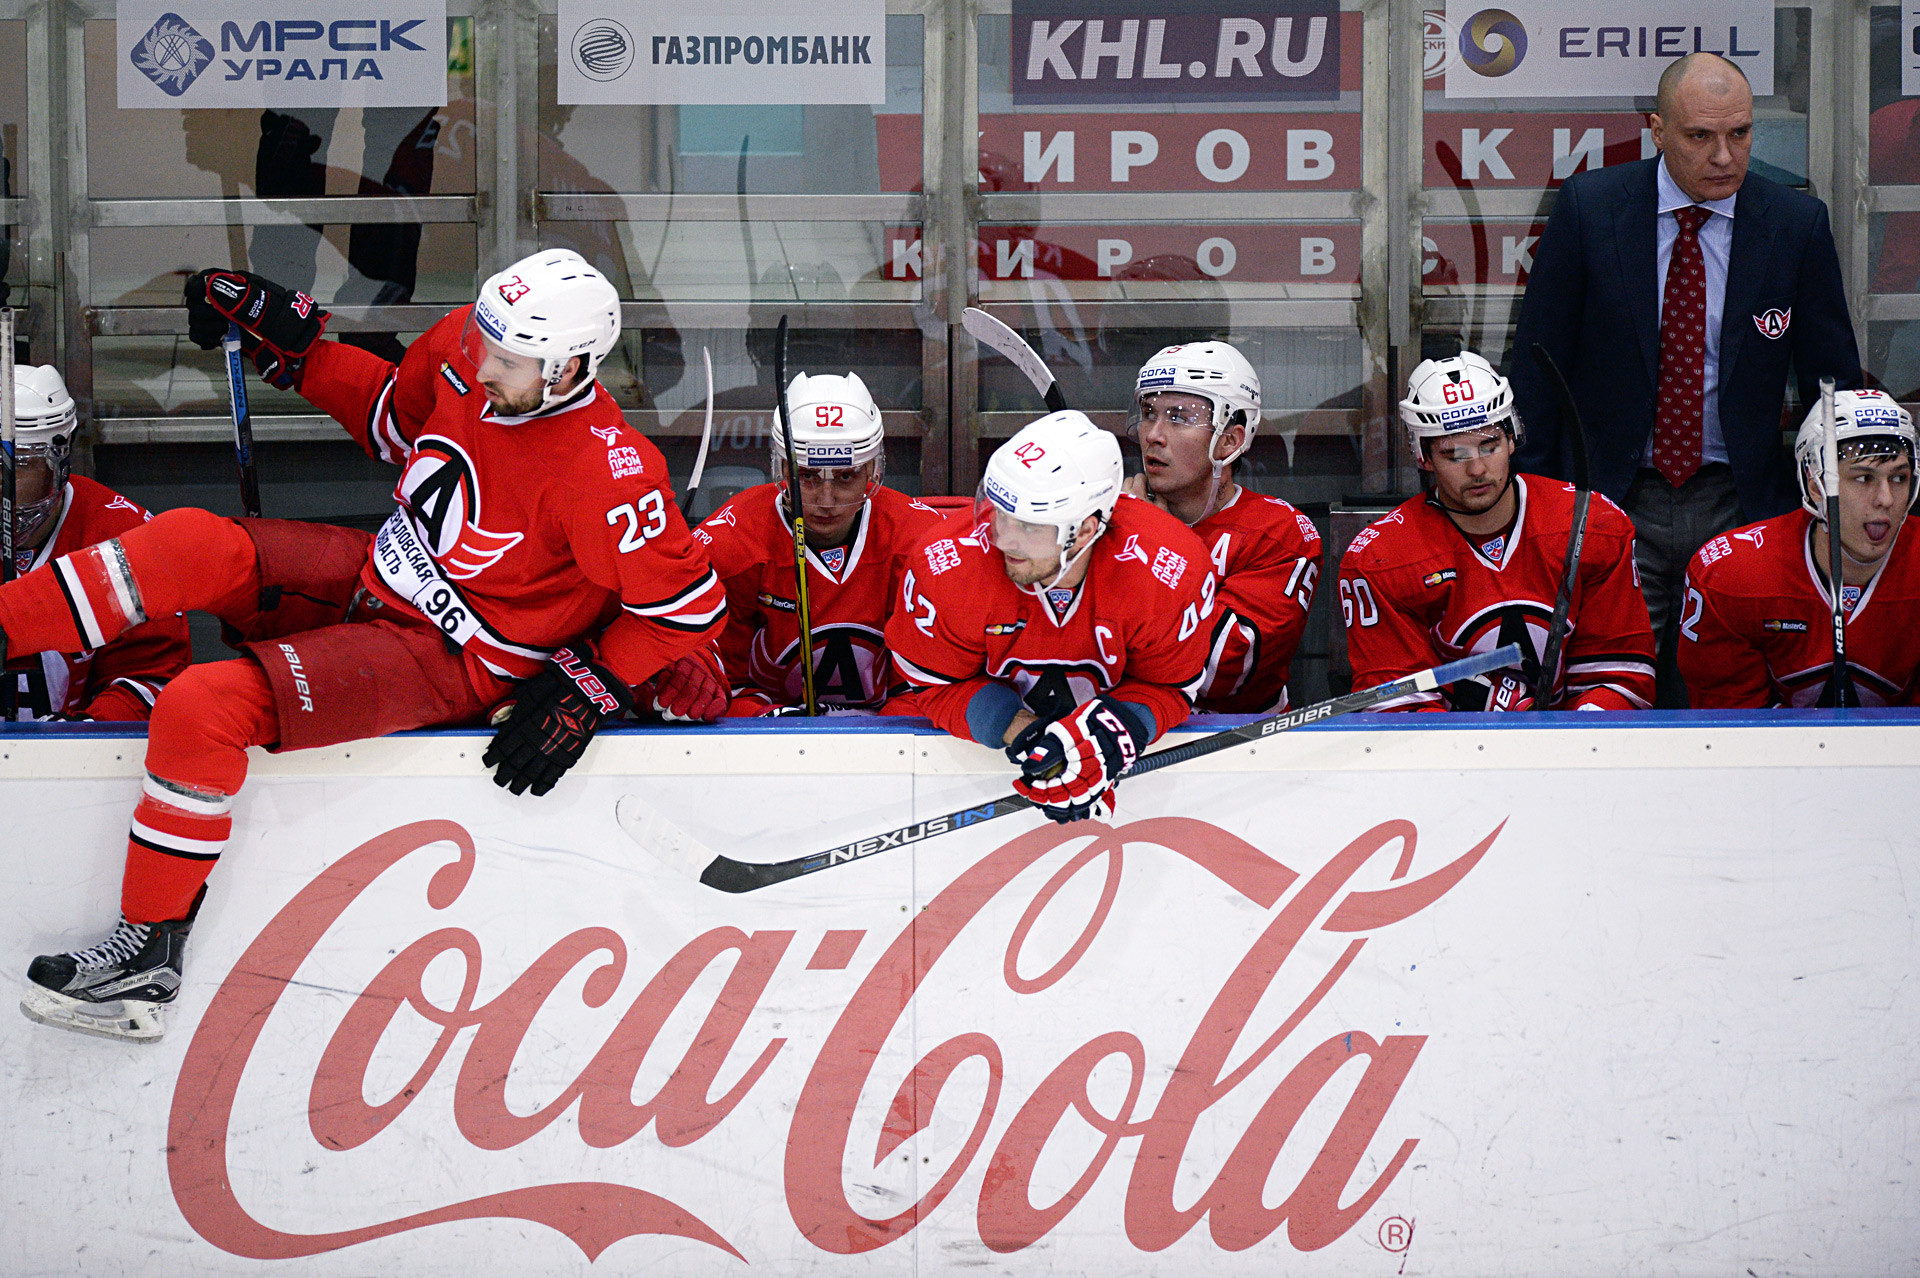 Coca Cola, known for its support to sporting events, is a partner of the Kontinental Hockey League (KHL) headquartered in Moscow. Being an official drink of the KHL it gets an extra boost to its image in the country.